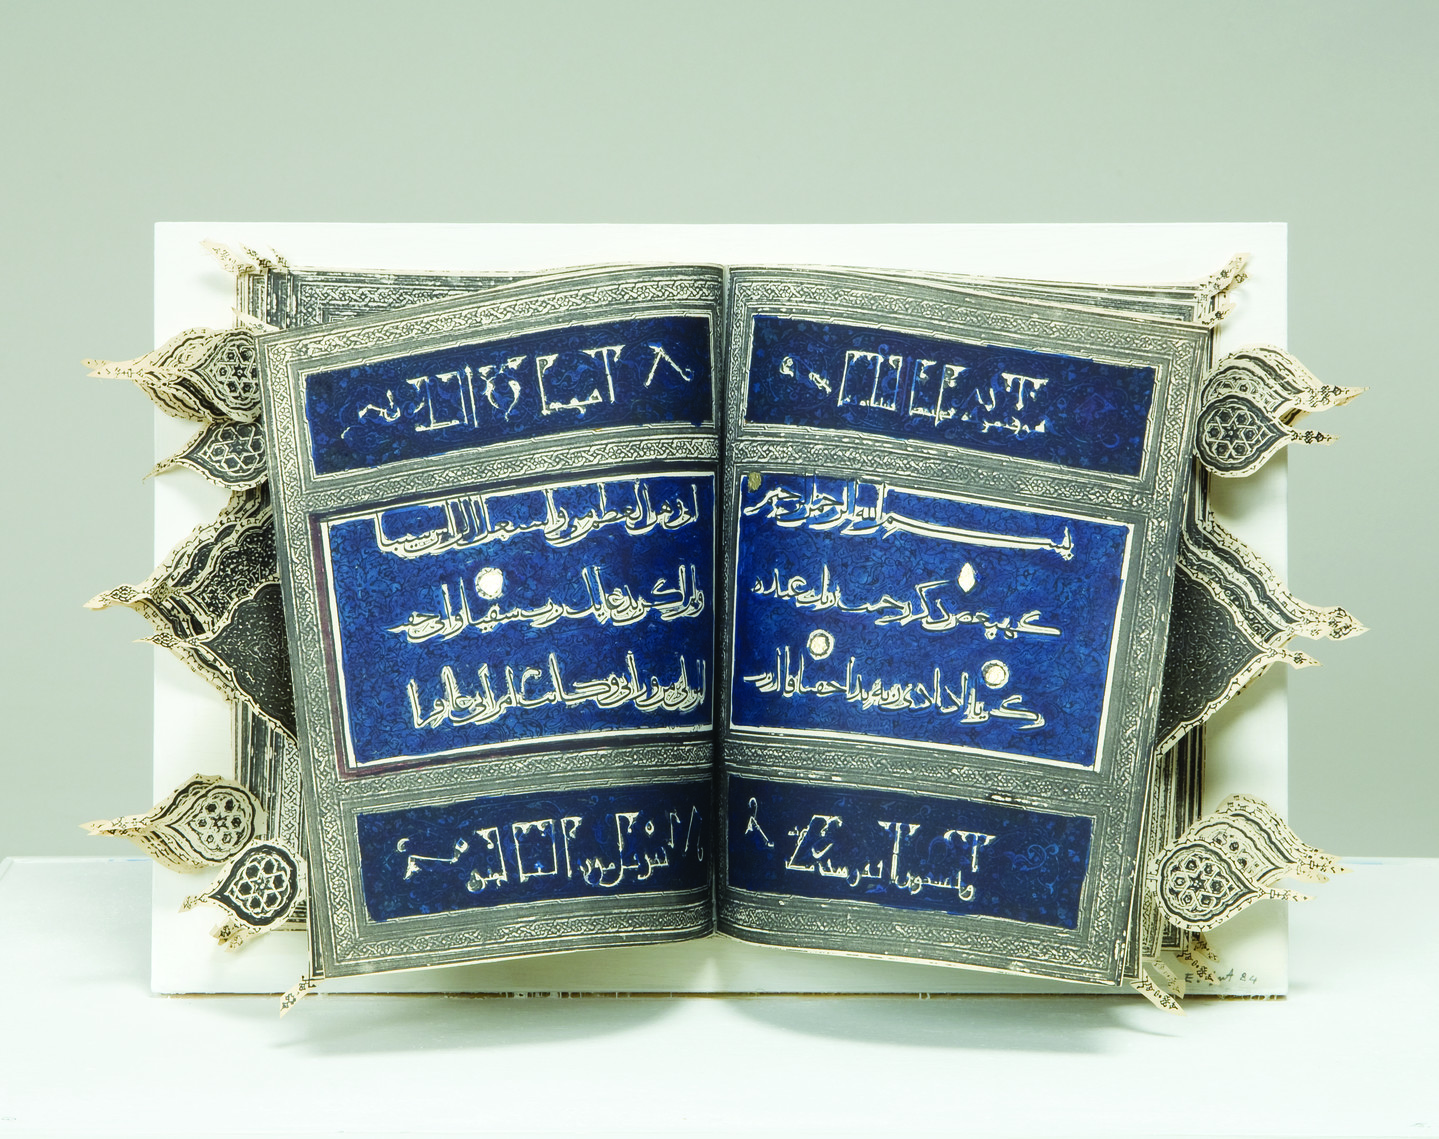 An open book with Arabic text on a dark blue background divided into horizontal sections by decorative silver border. Cut-out arabesques extend out beyond the edge of the book to the right and left.